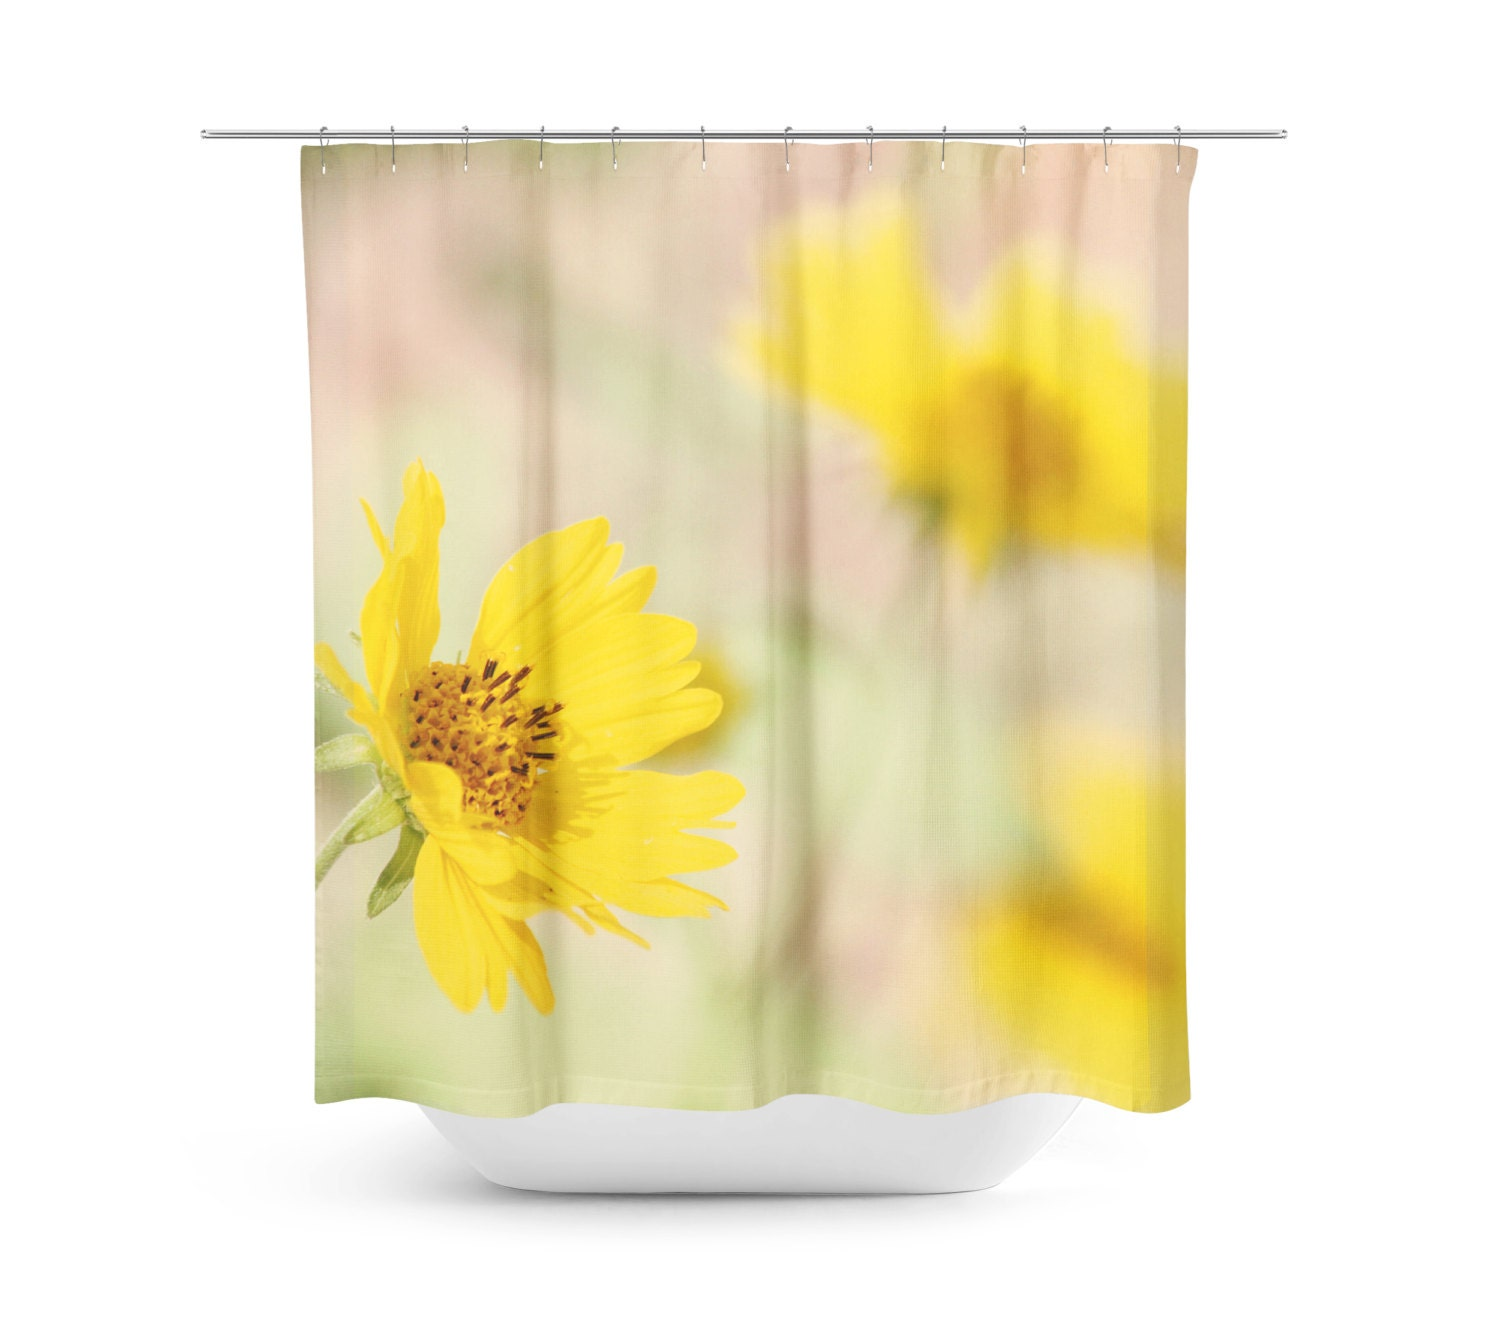 Yellow flowers shower curtain bright yellow floral for Bright yellow bathroom accessories